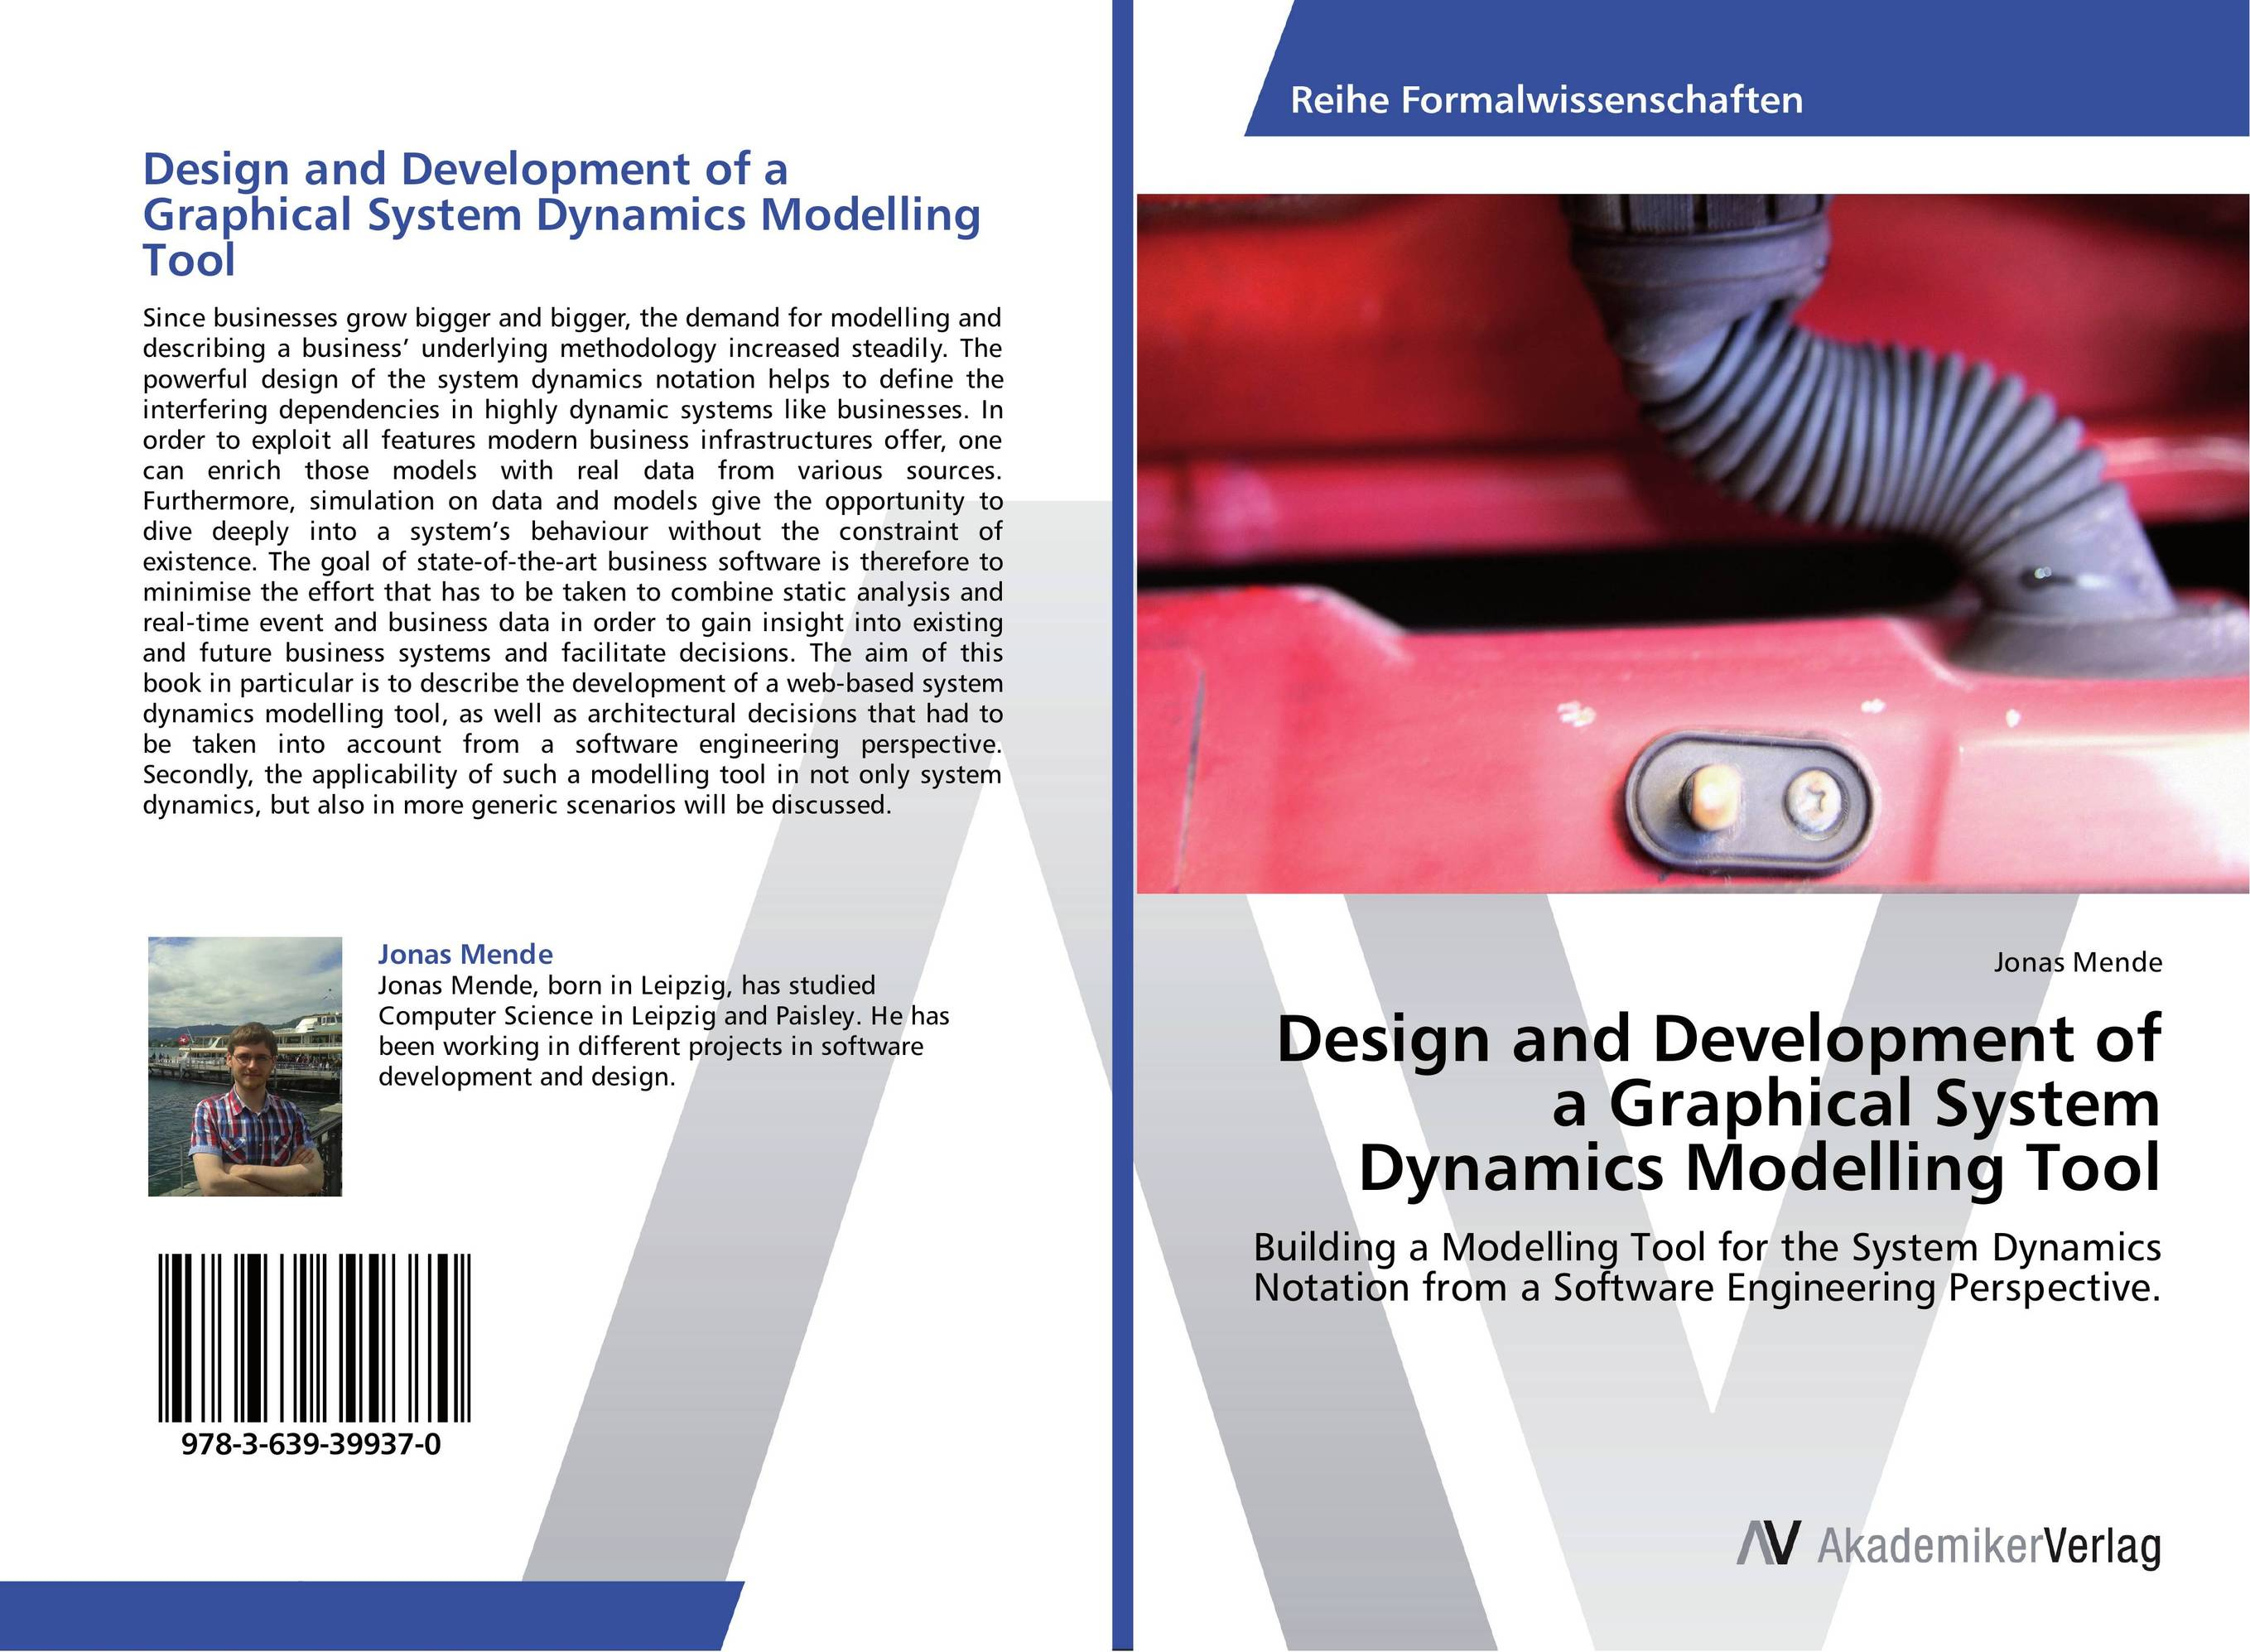 Design and Development of a Graphical System Dynamics Modelling Tool